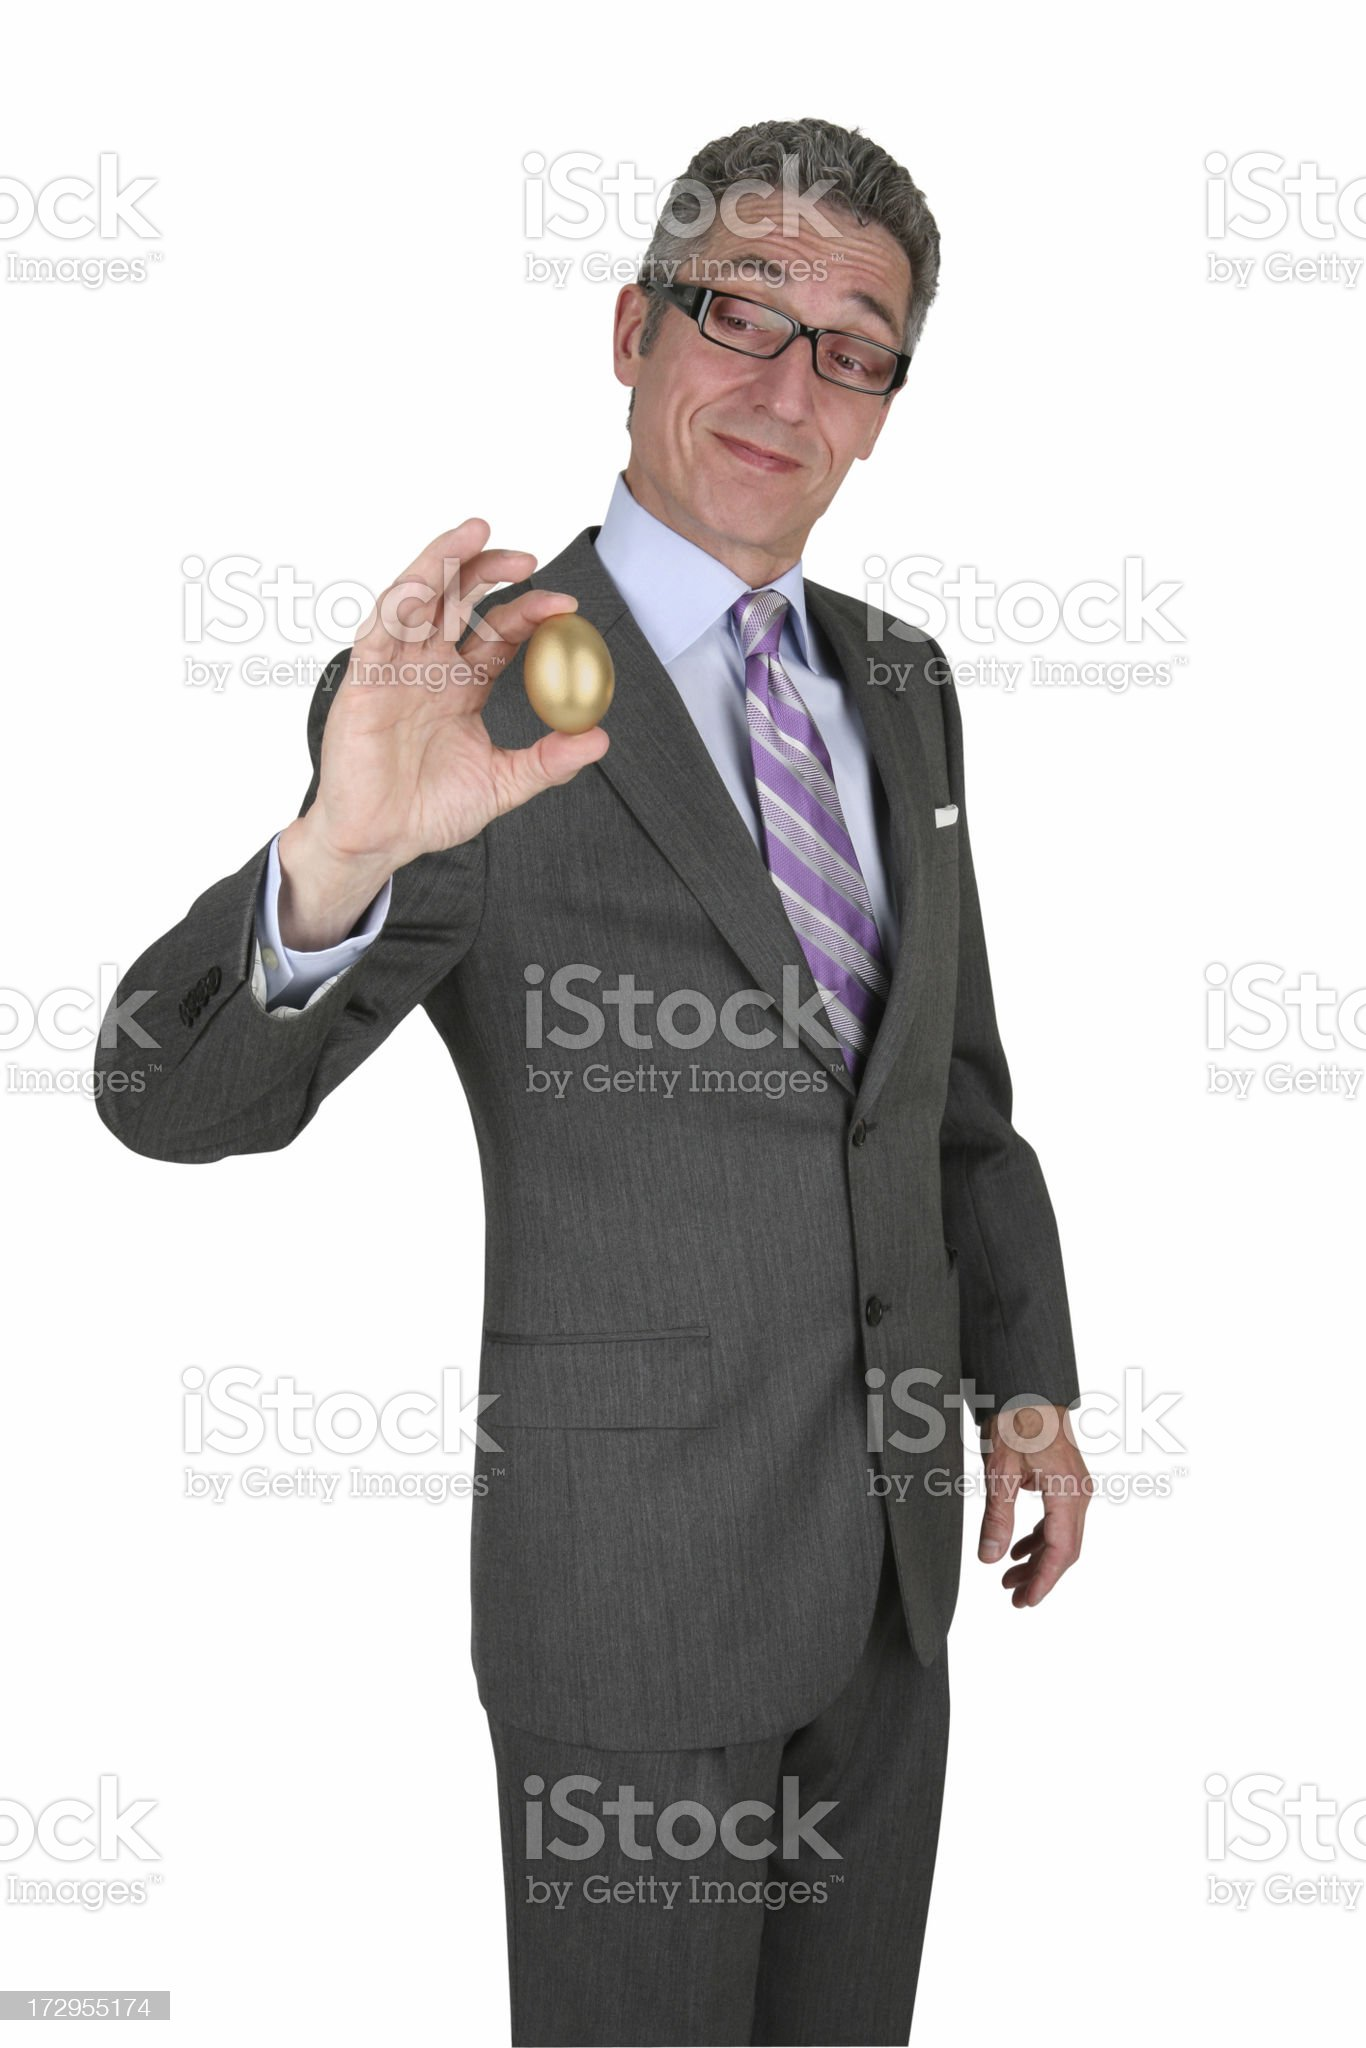 Businessman Holding Nest Egg with Clipping Path royalty-free stock photo